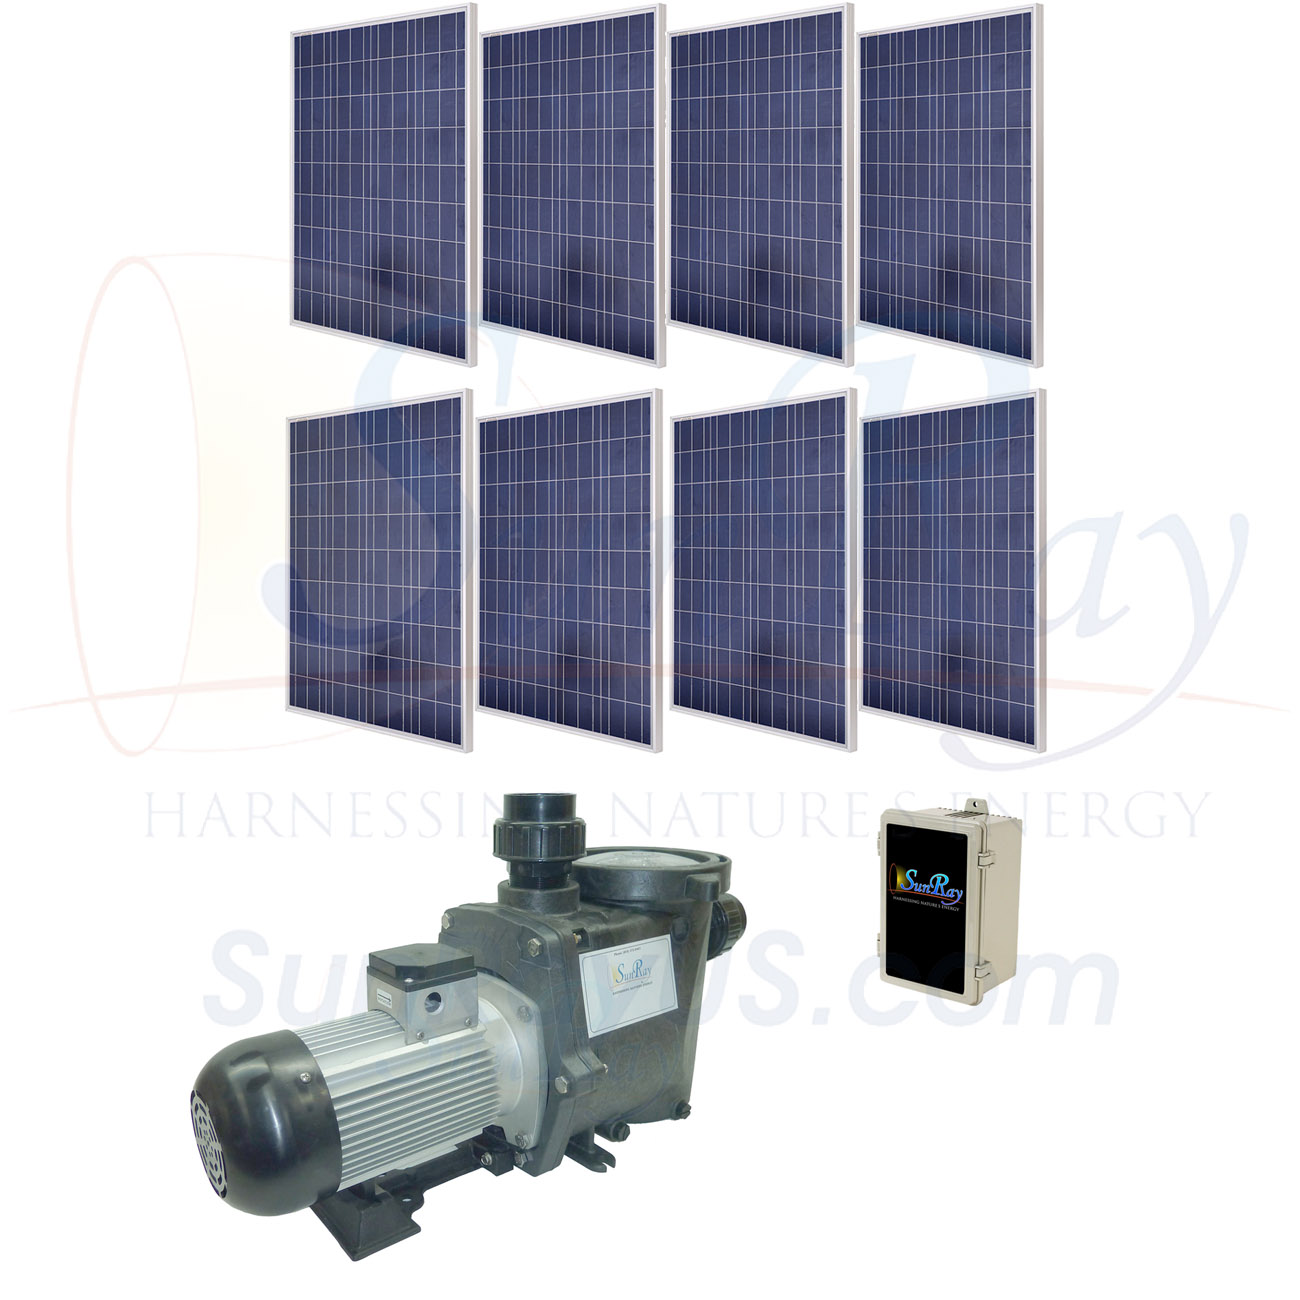 SunRay Solar Pool Pumps - Solar Powered Pool Pumps - Residential